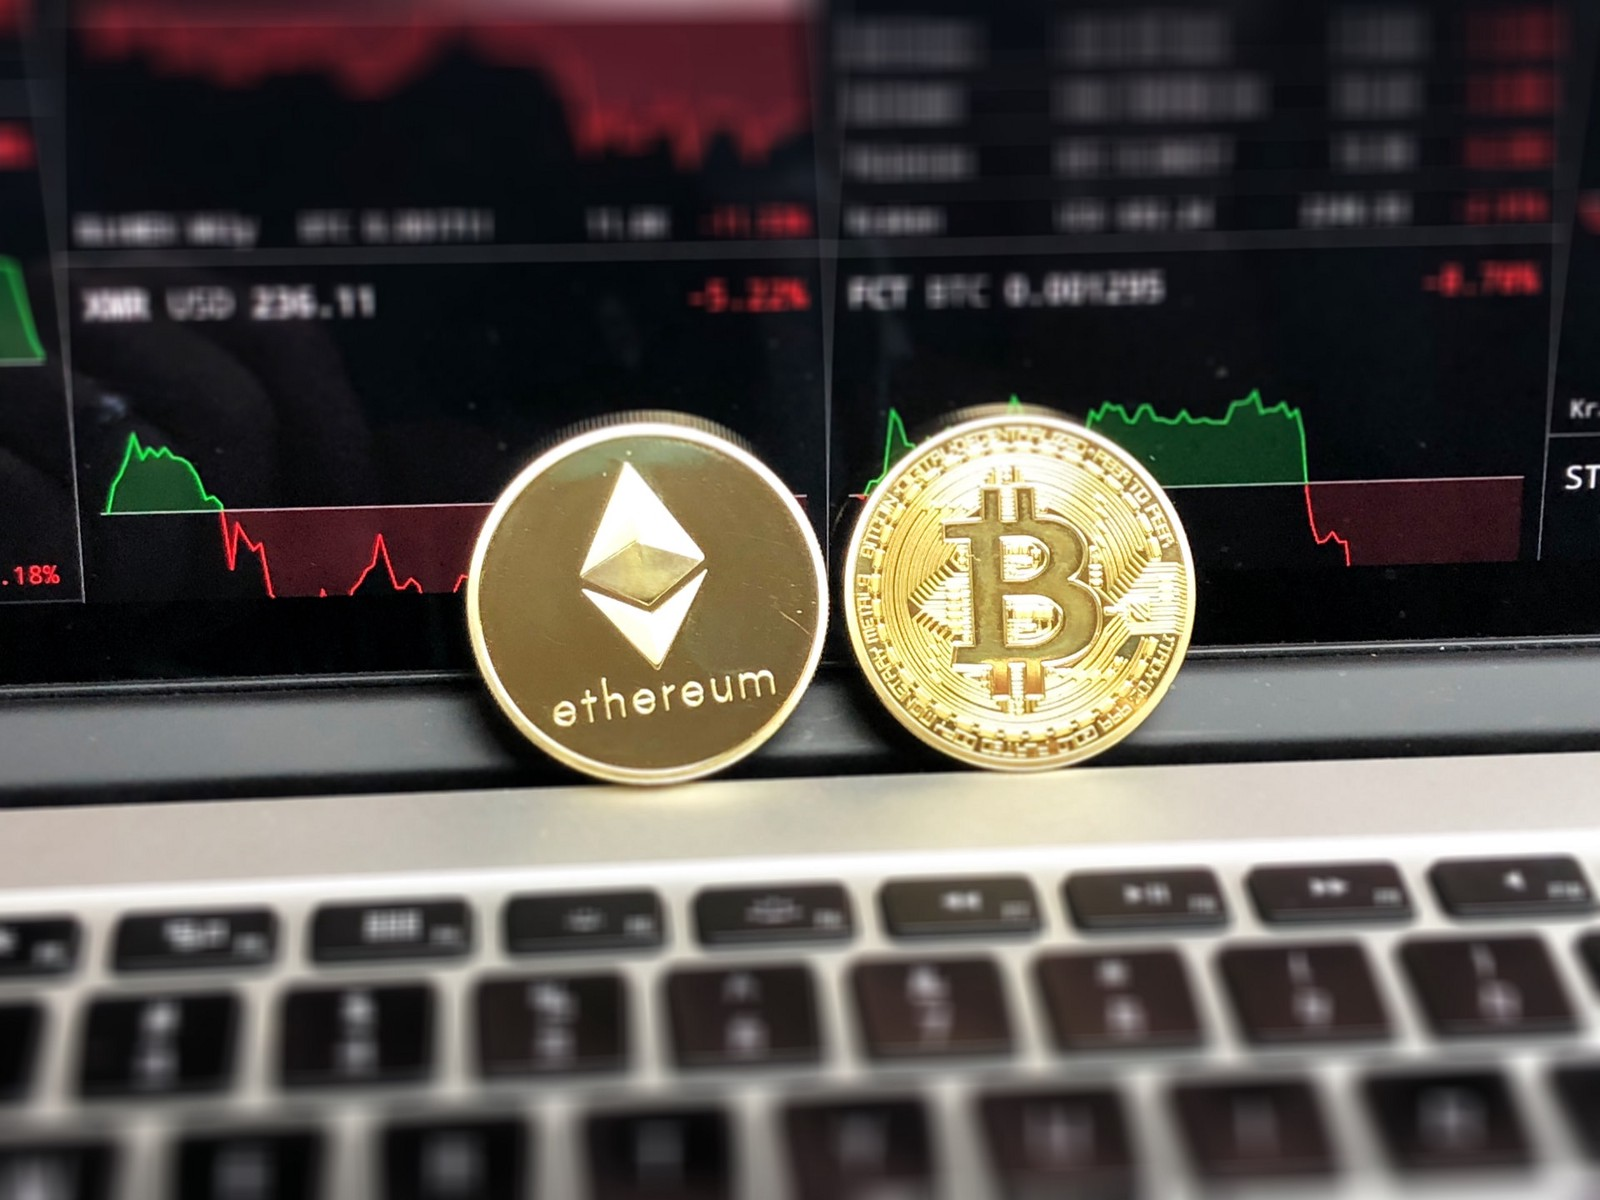 /how-to-class-cryptocurrencies-in-your-investment-portfolio-57d08901e70a feature image